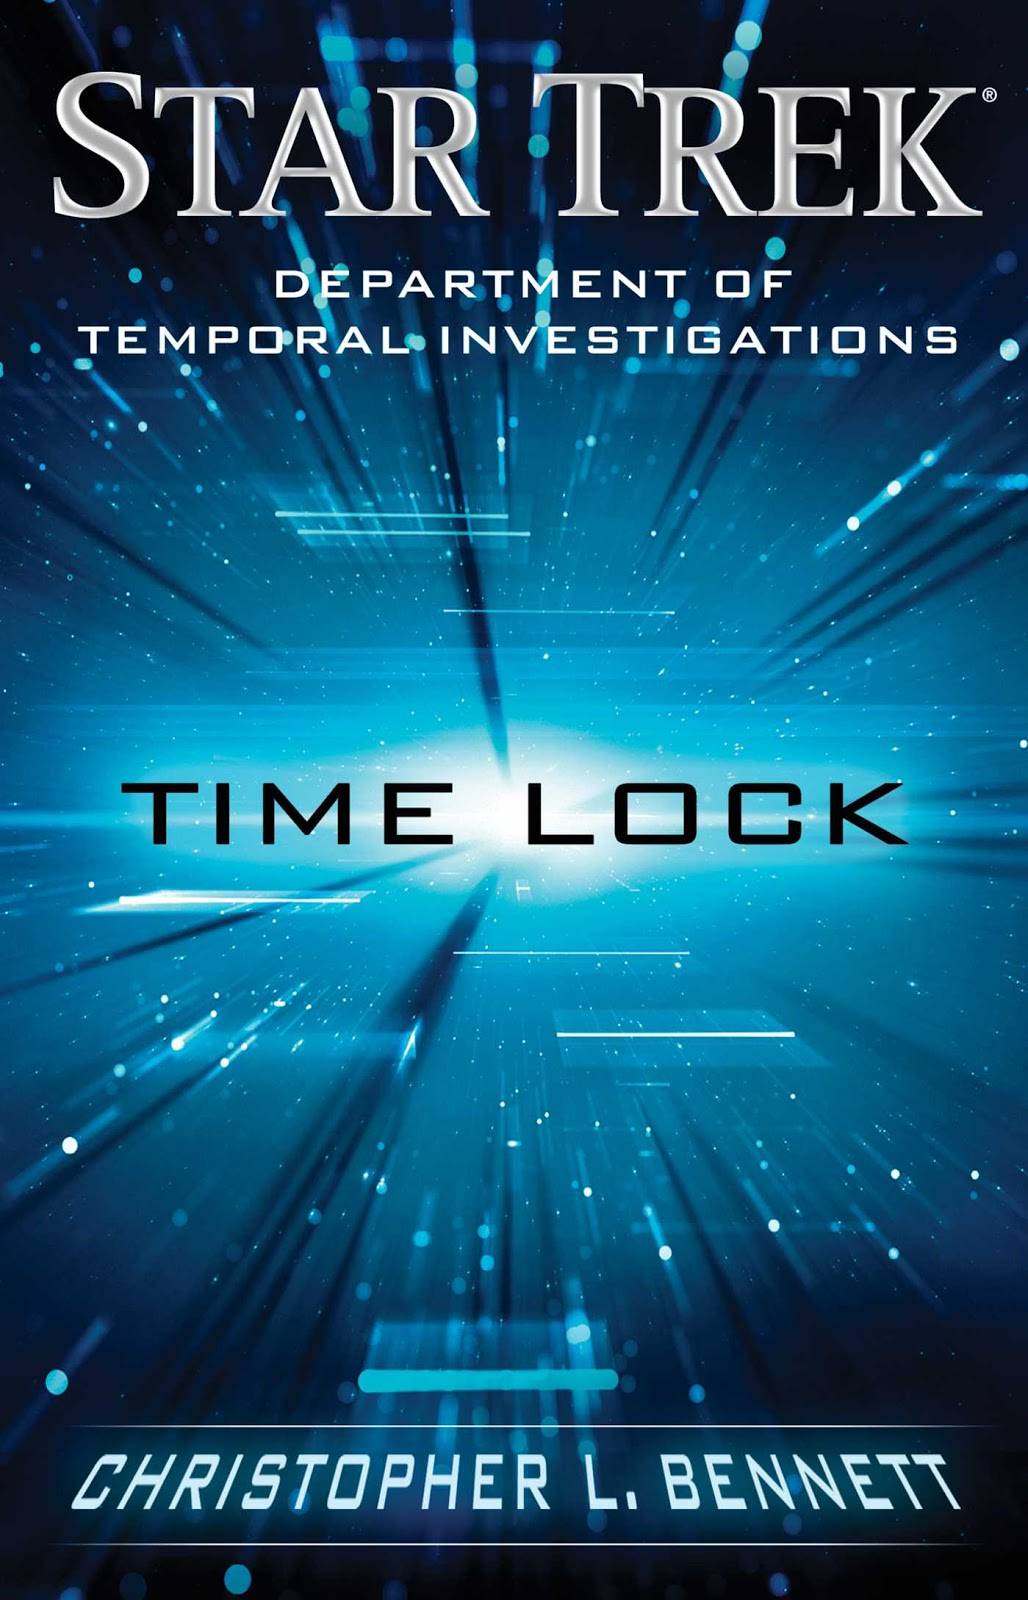 Star+Trek+Department+of+Temporal+Investigations+Time+Lock